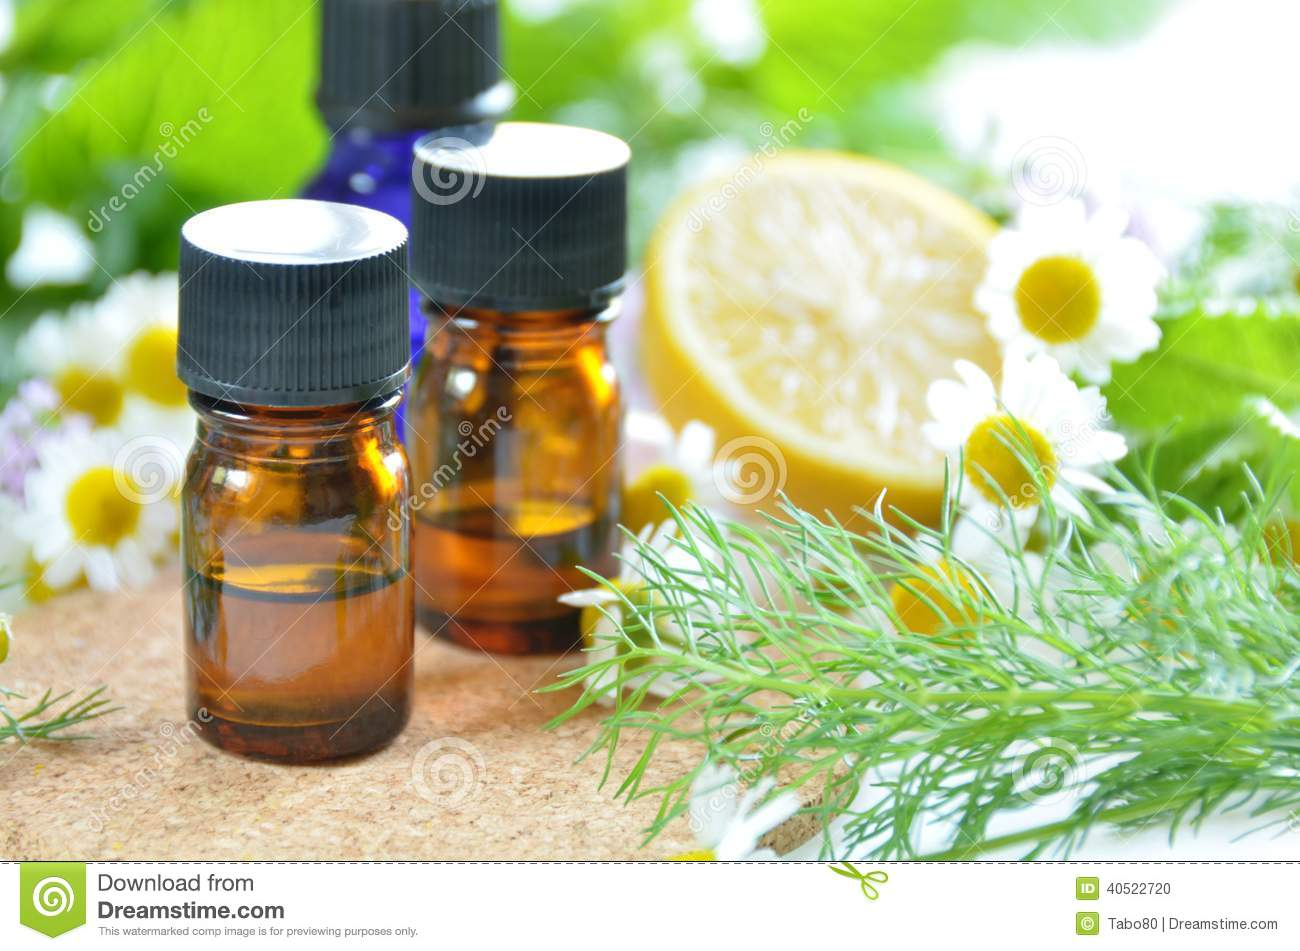 how to make essential oils from flowers